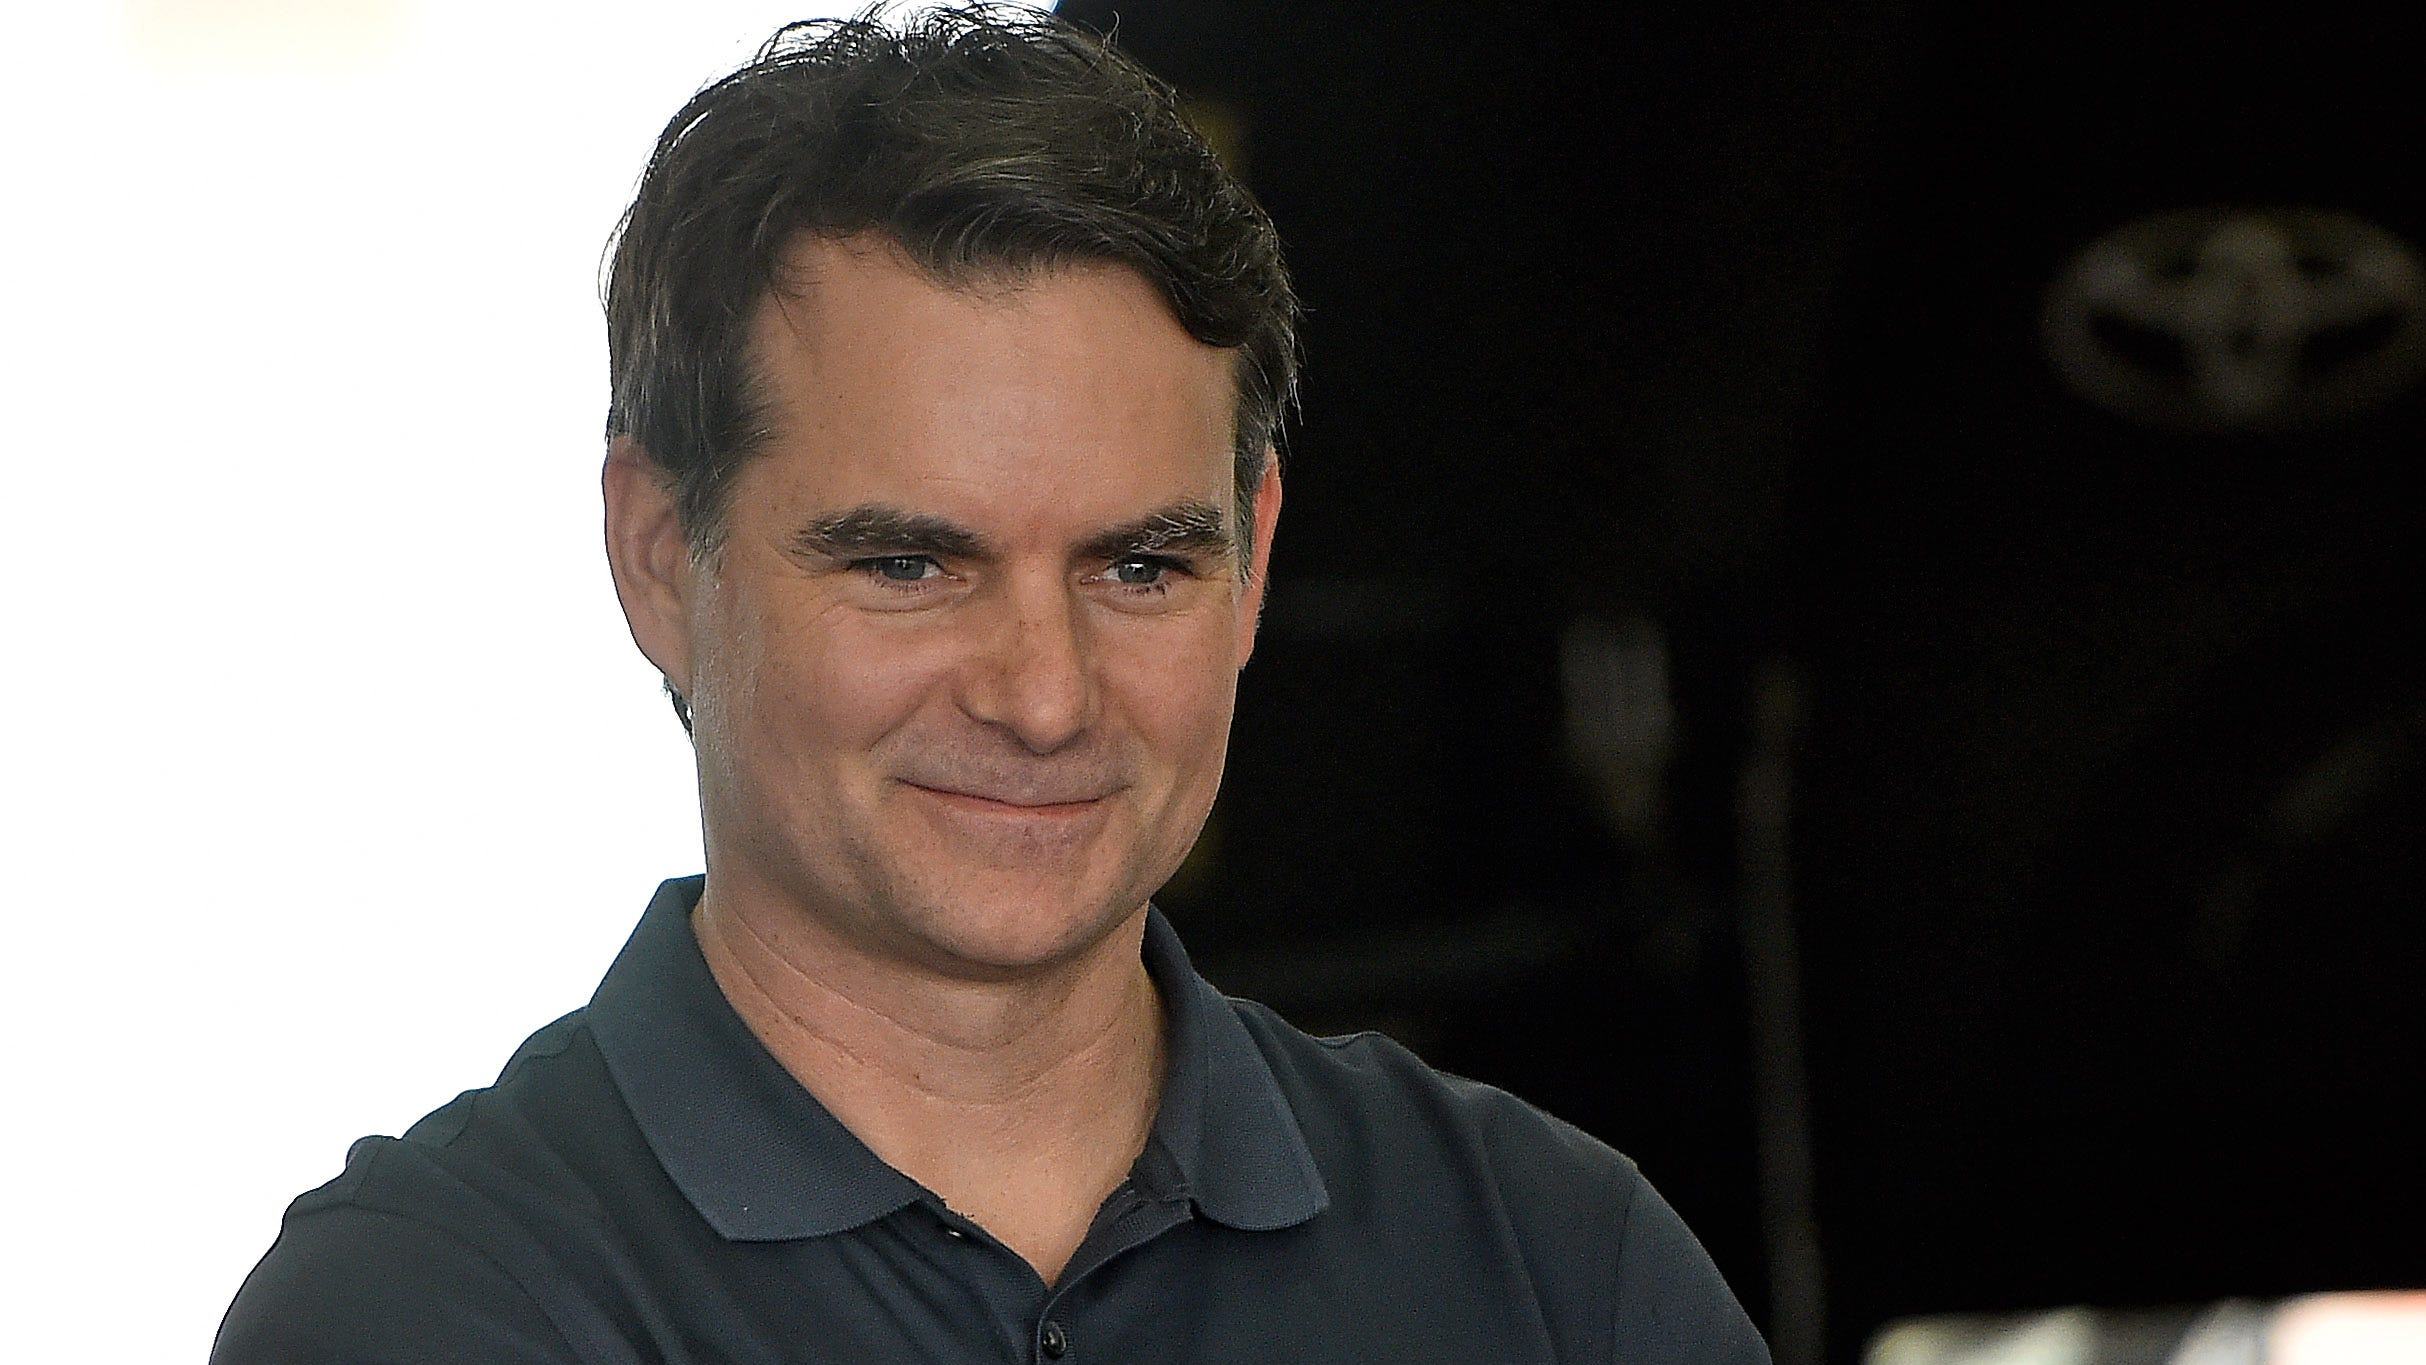 Jeff Gordon dishes on NASCAR drivers poised to become stars in 2019 and beyond